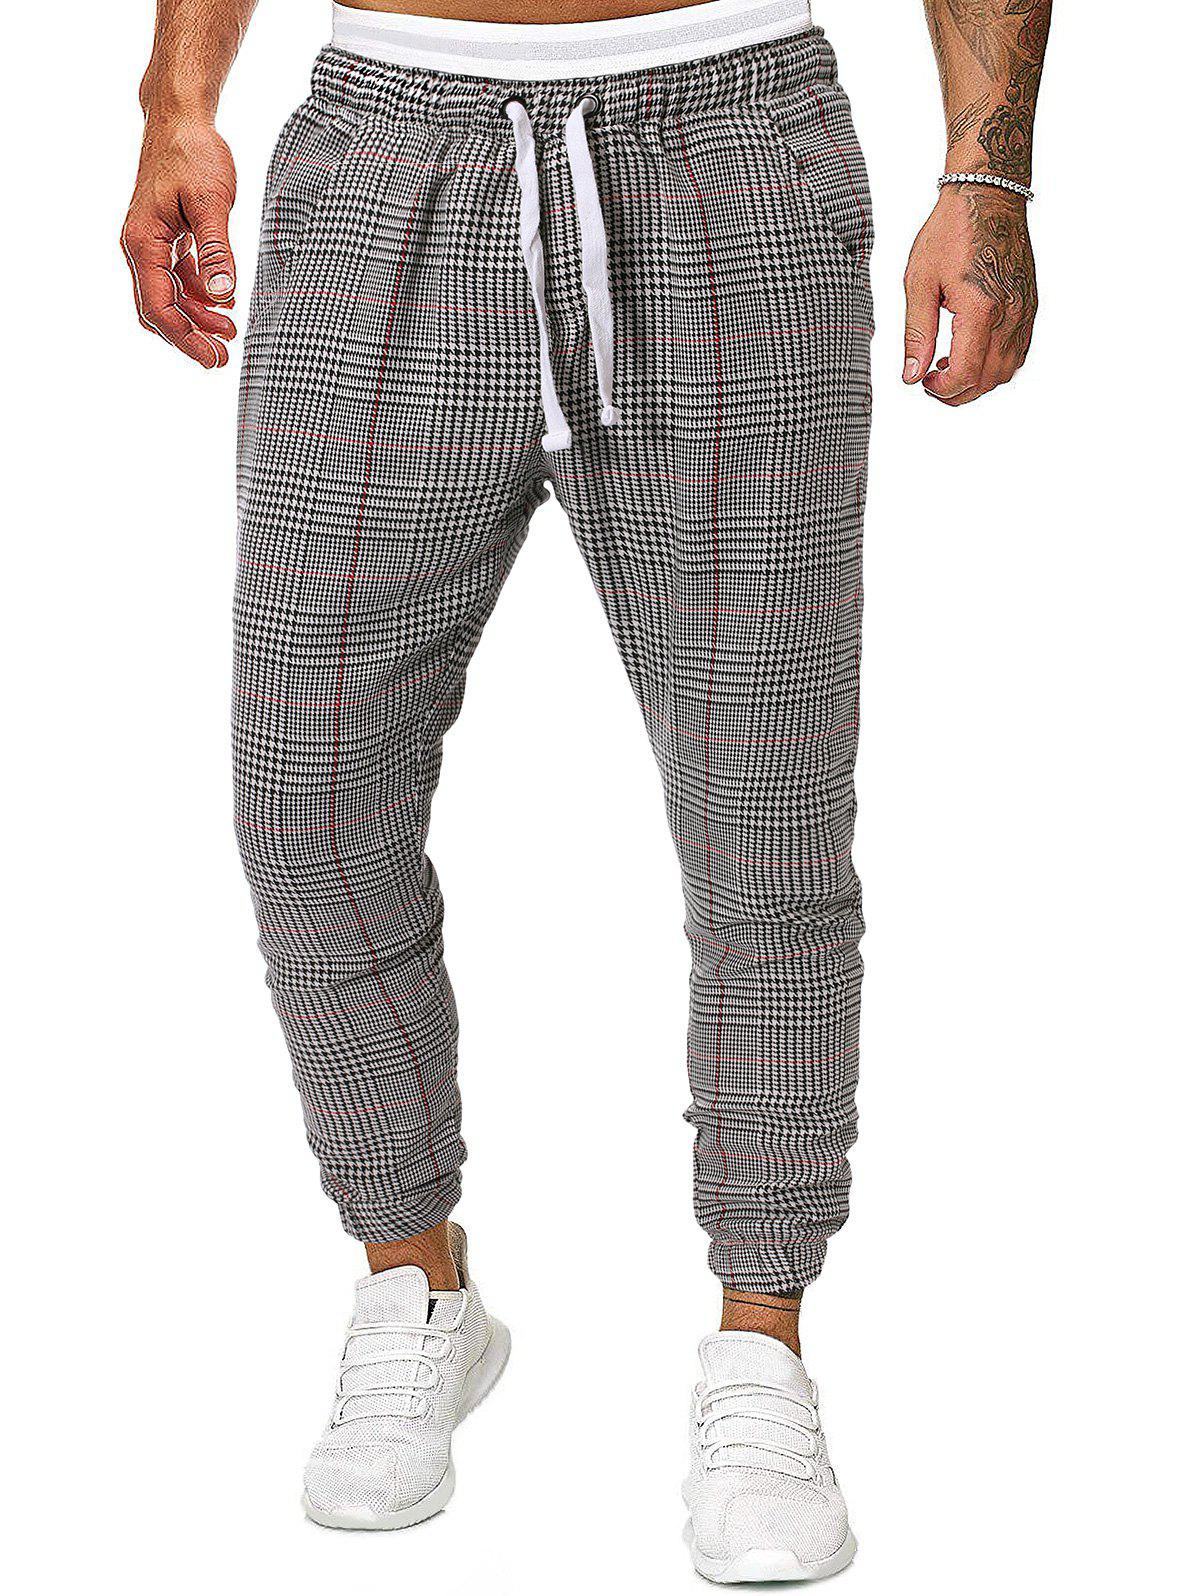 Best Houndstooth Plaid Print Side Pocket Casual Jogger Pants